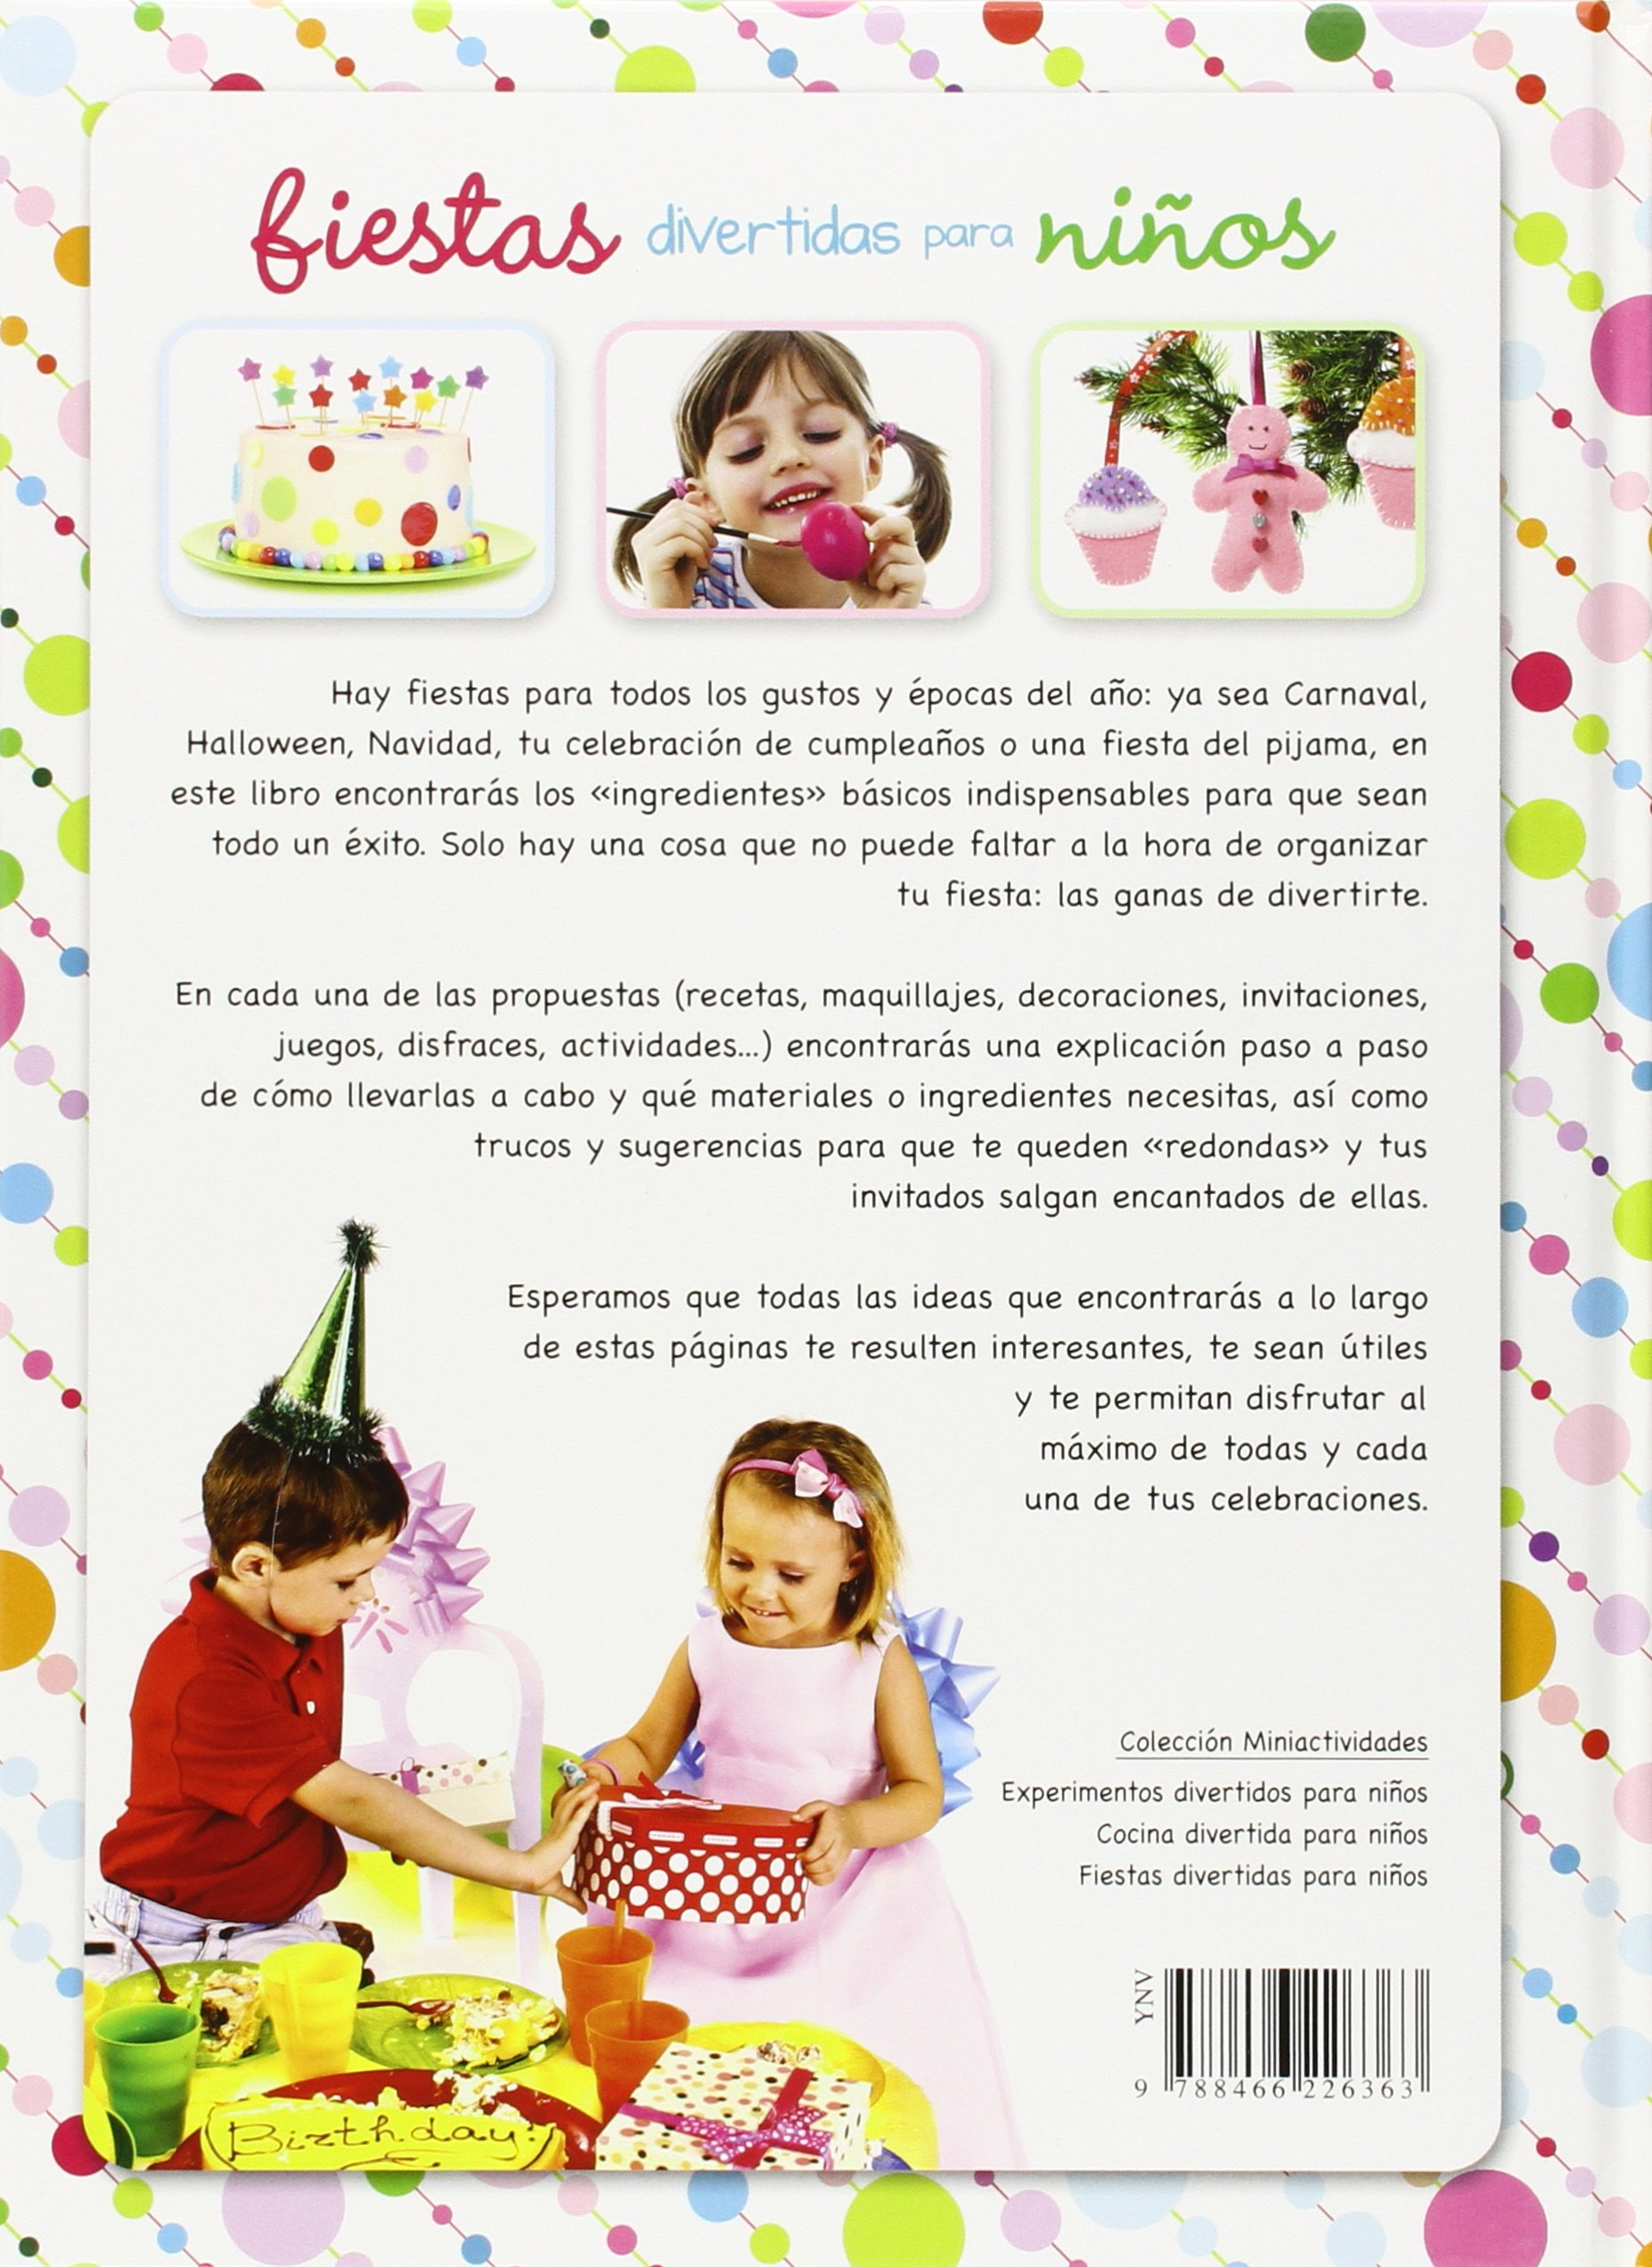 Fiestas divertidas para ninos (Spanish Edition): Carla Nieto Martinez: 9788466226363: Amazon.com: Books